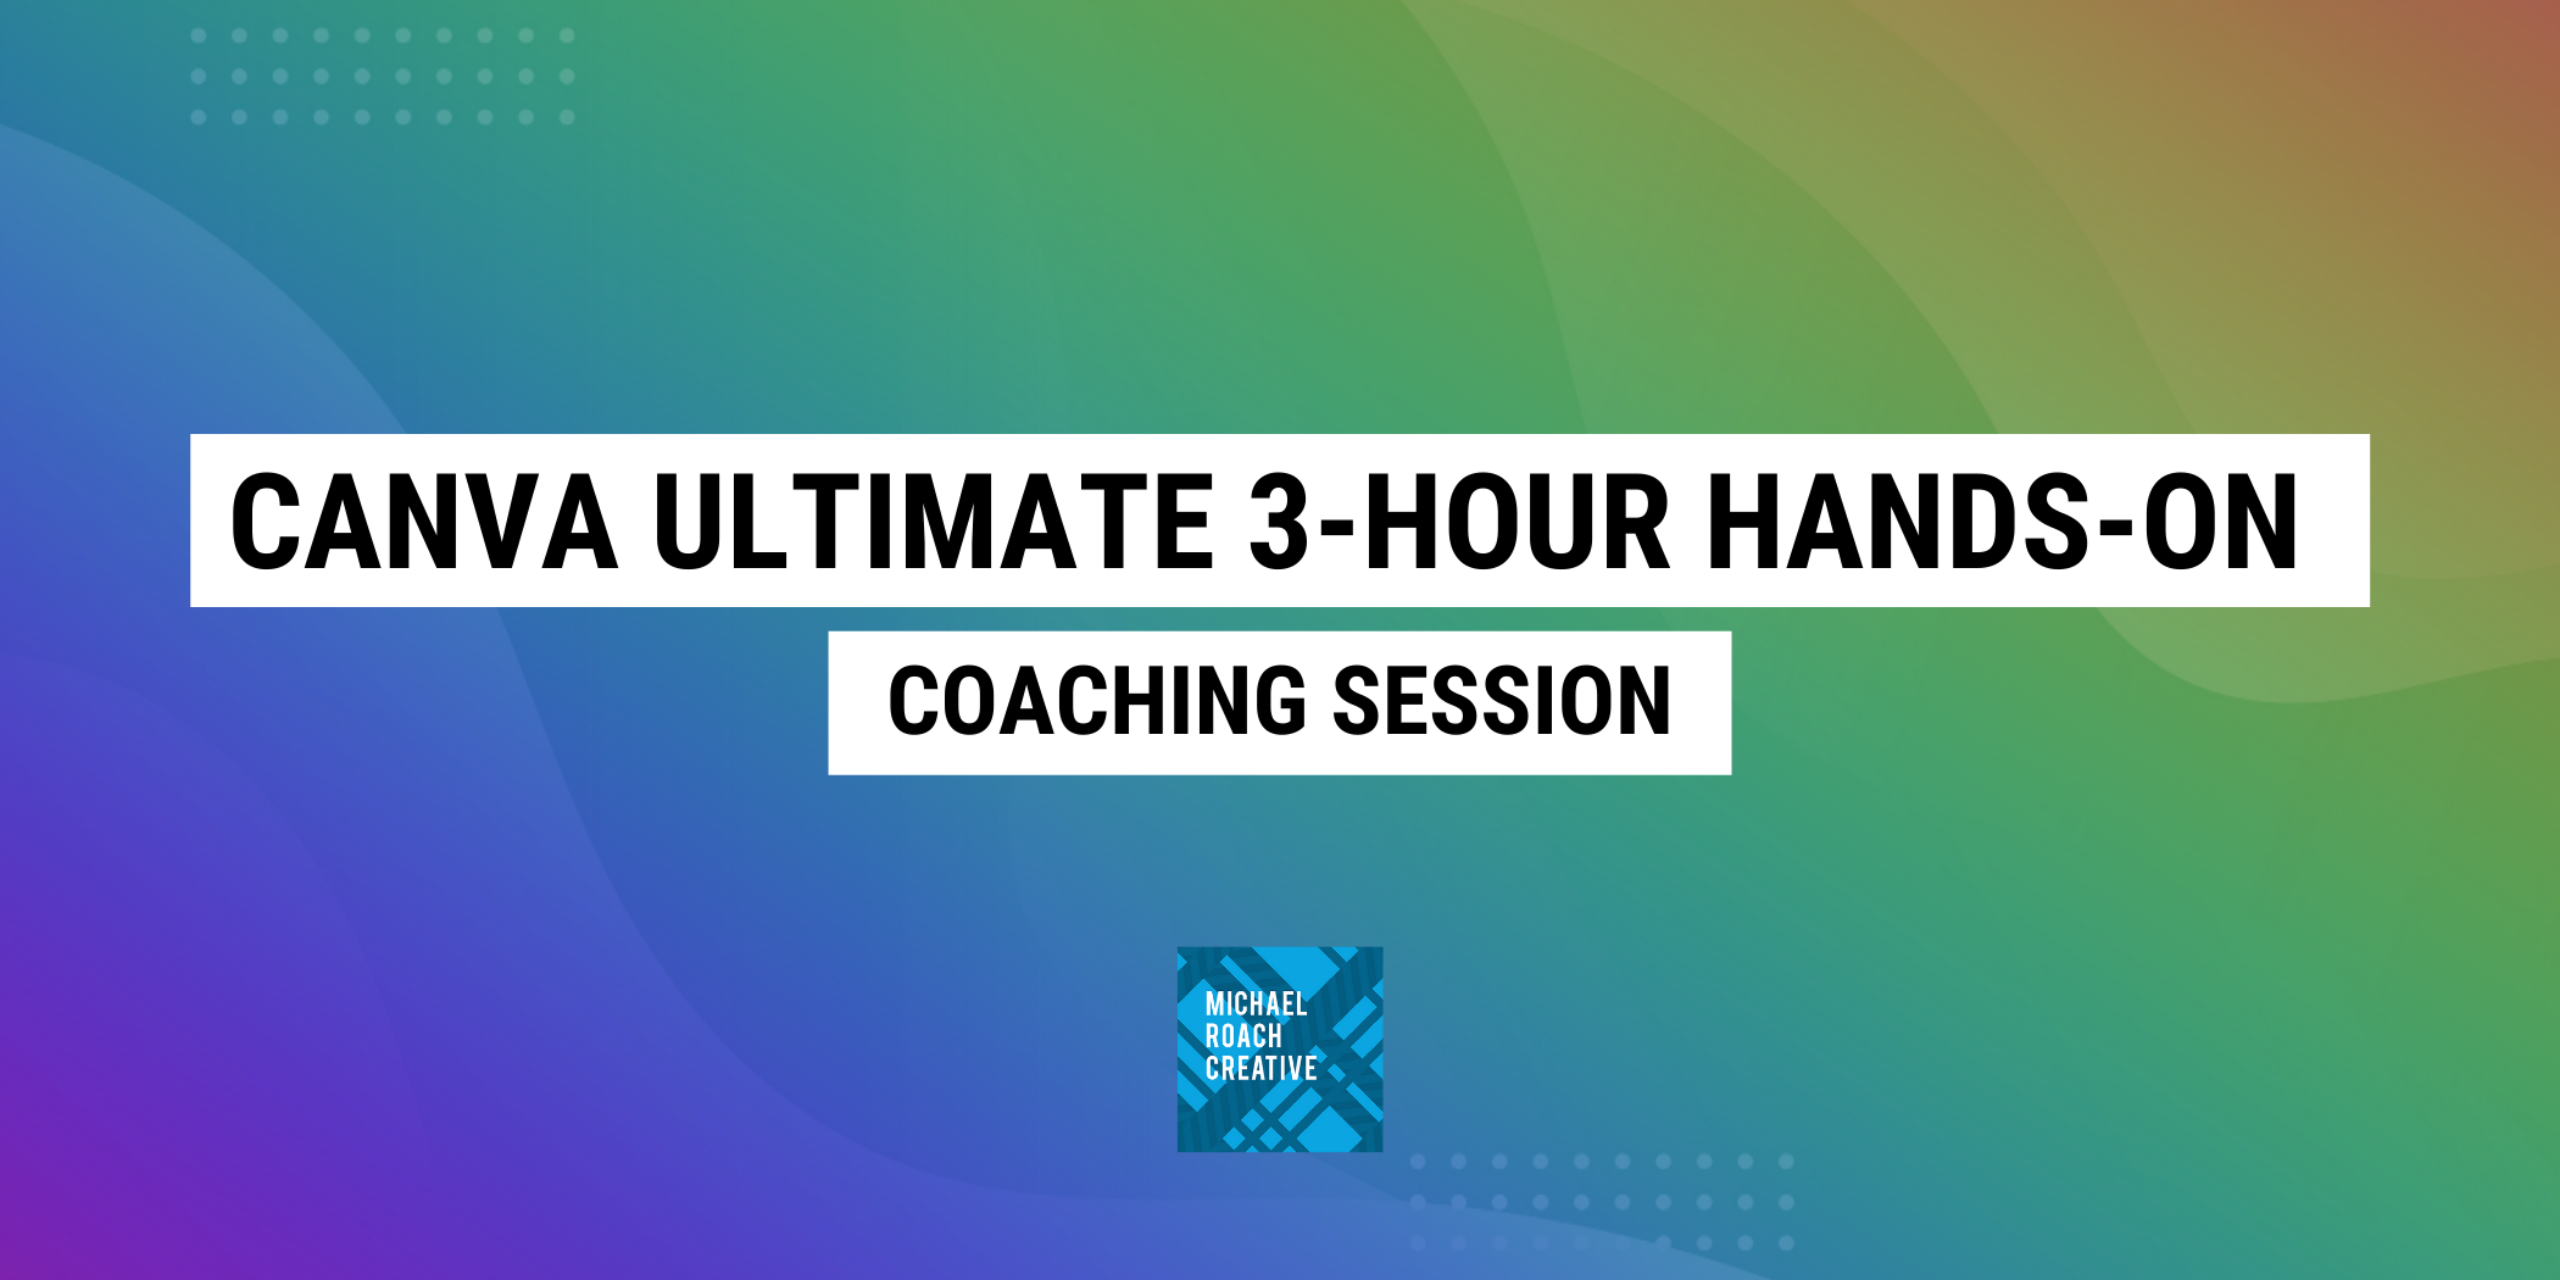 Canva Ultimate 3-Hour Hands-On Coaching Session